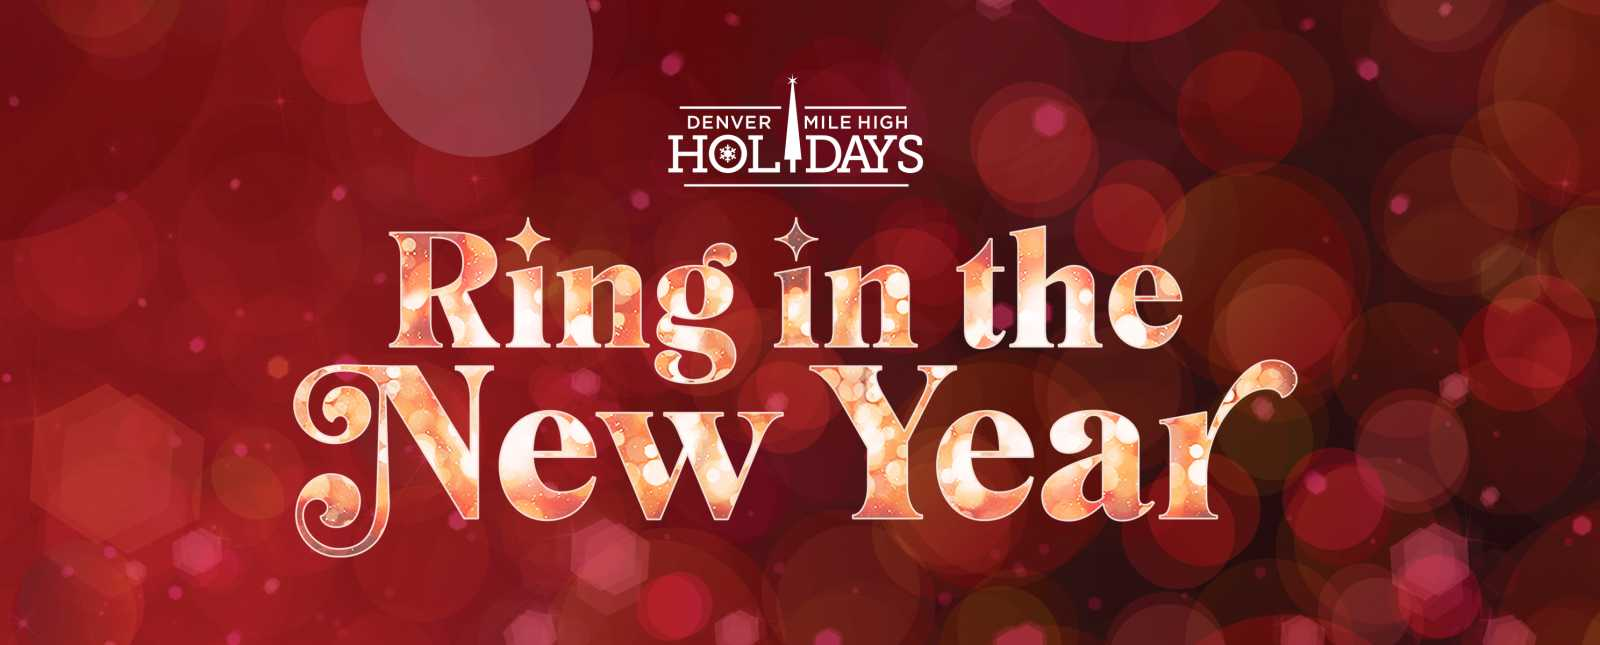 Mile High Holidays - Ring in the new year